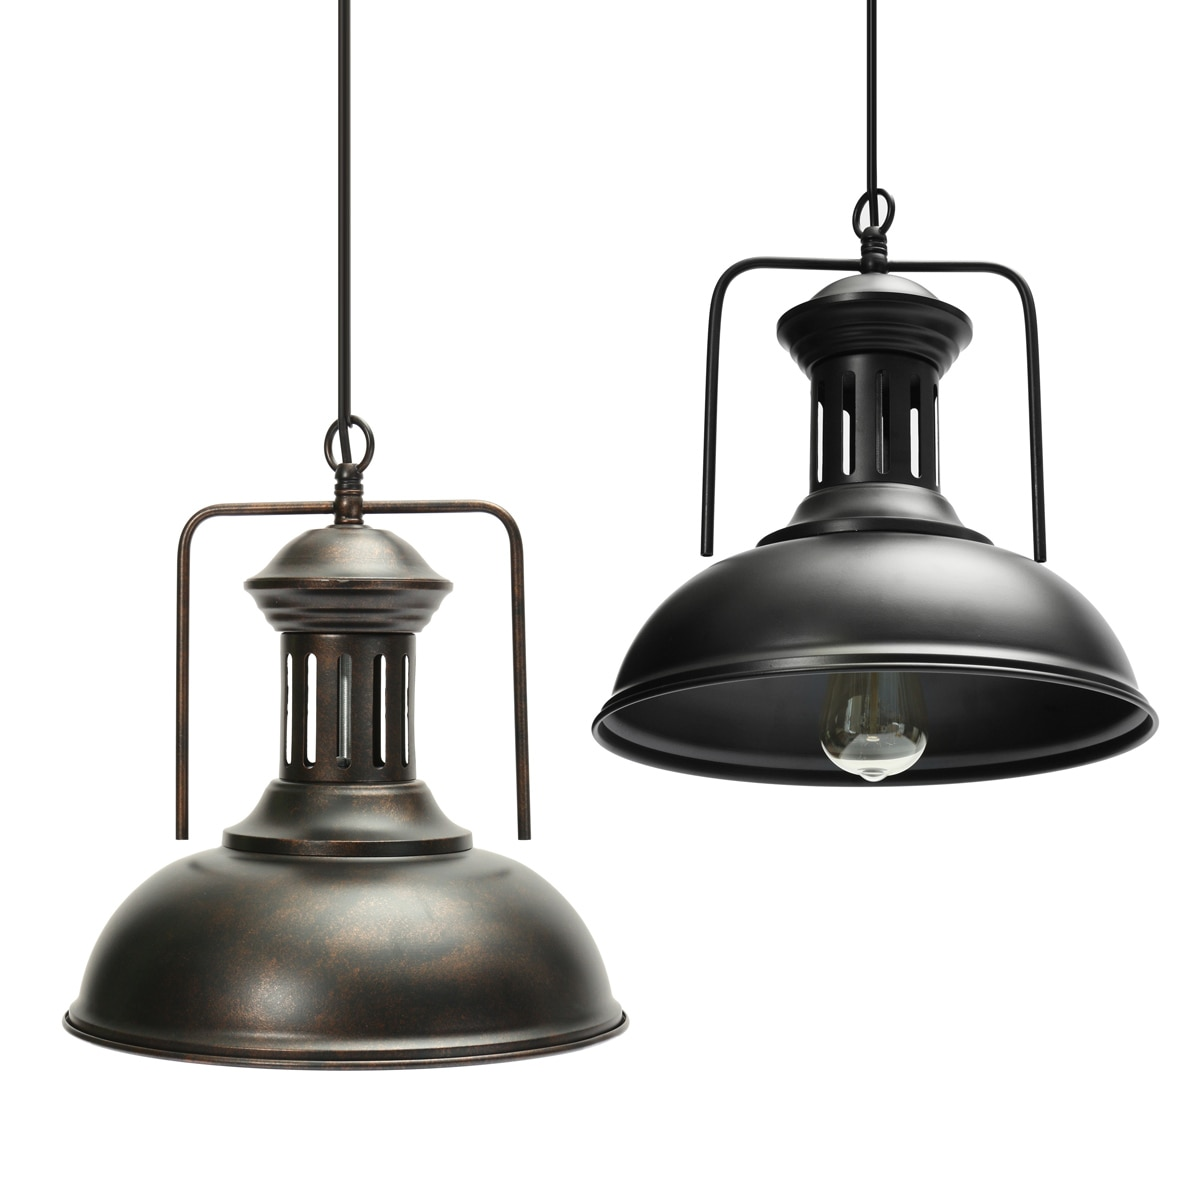 Black Rust Design Pendant Lighting